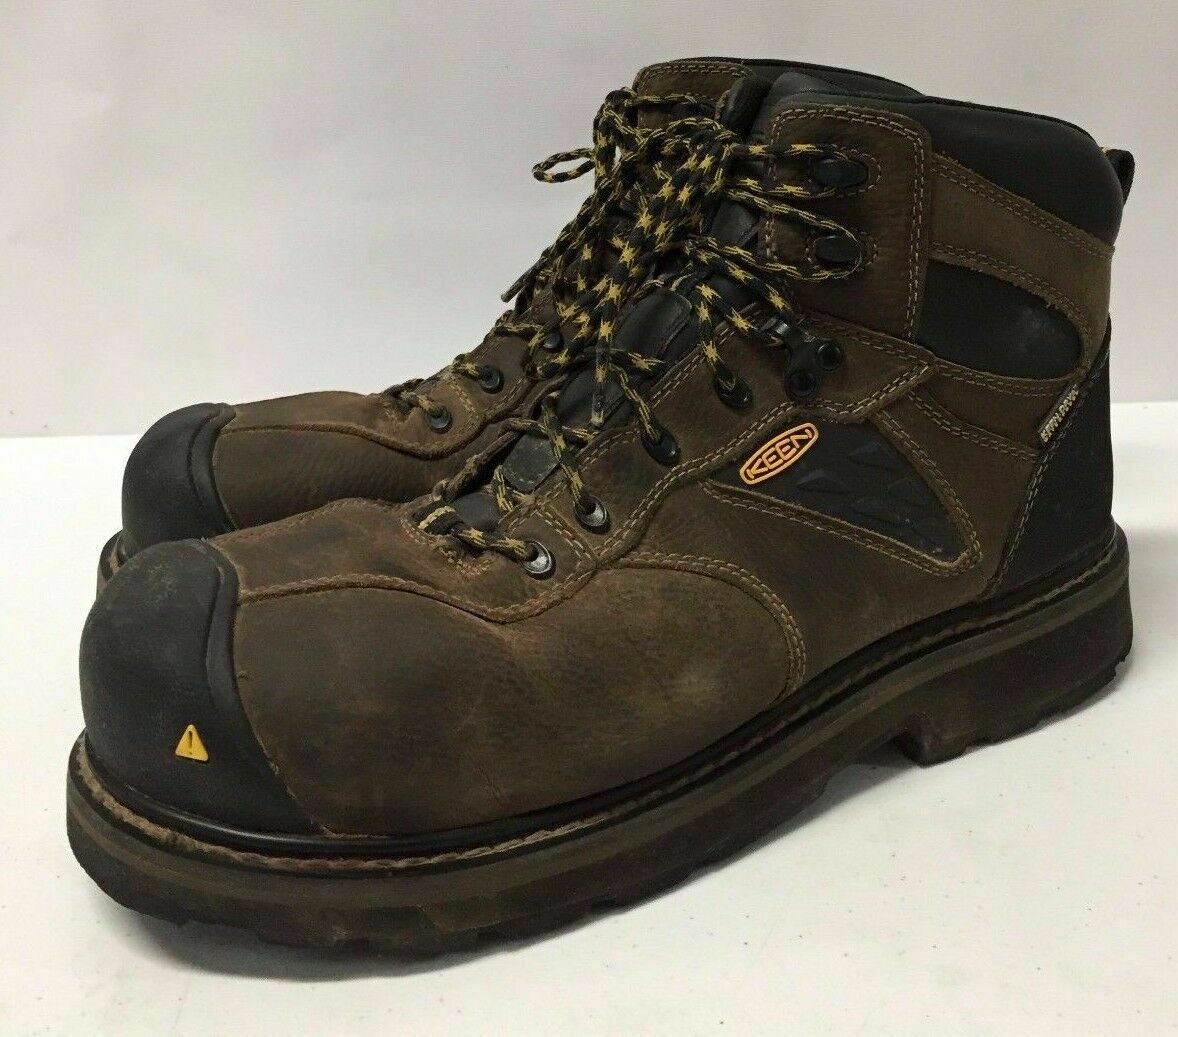 Keen Mens Brown Utility Tacoma WP Work Boots shoes Size 11.5 EE